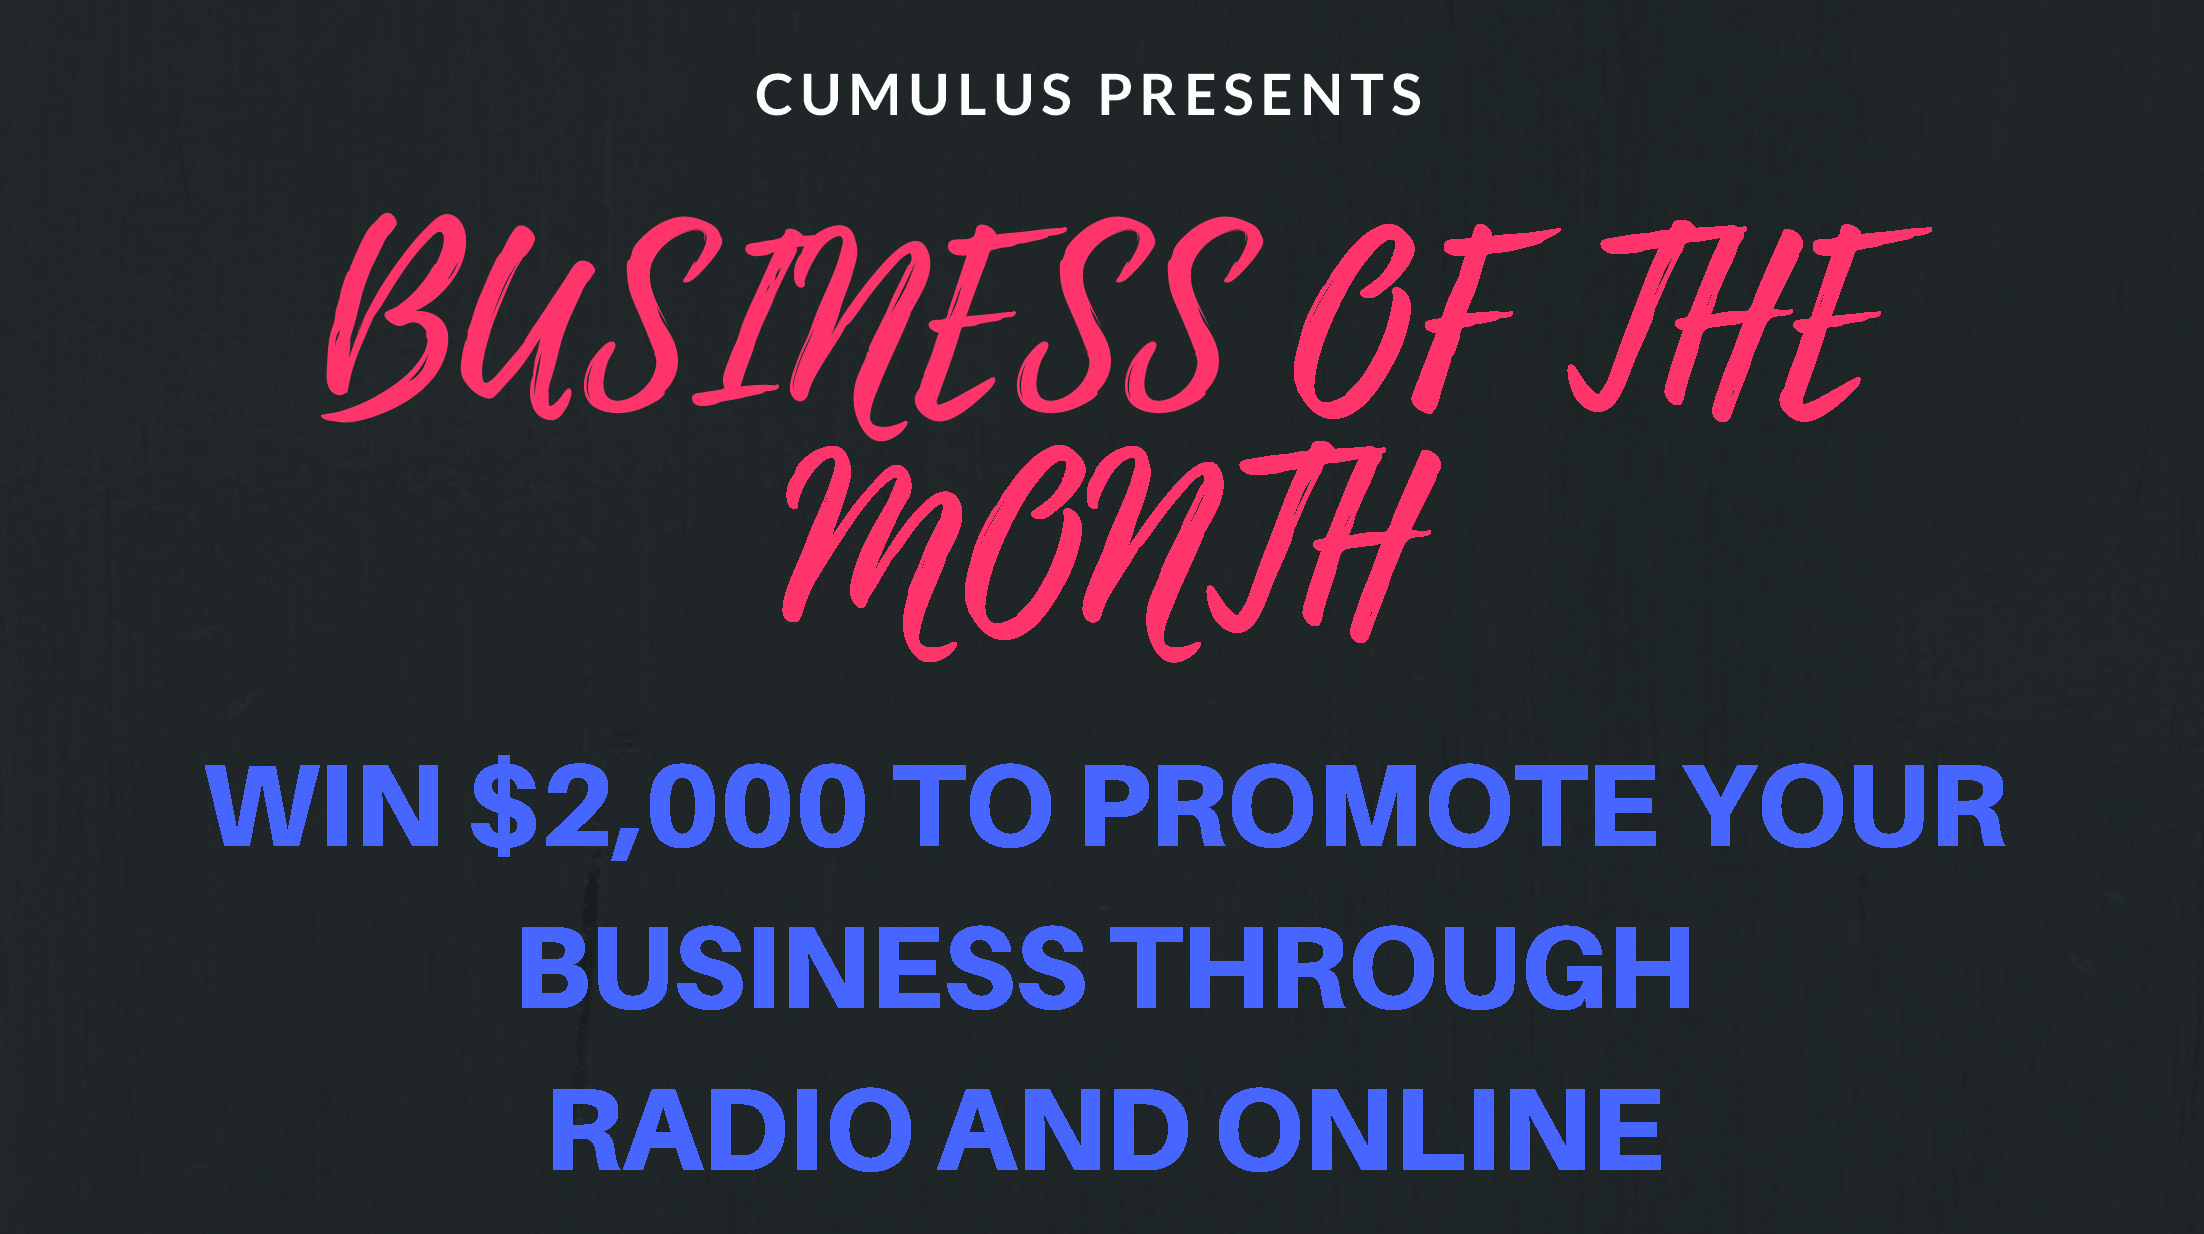 Cumulus Business of the Month